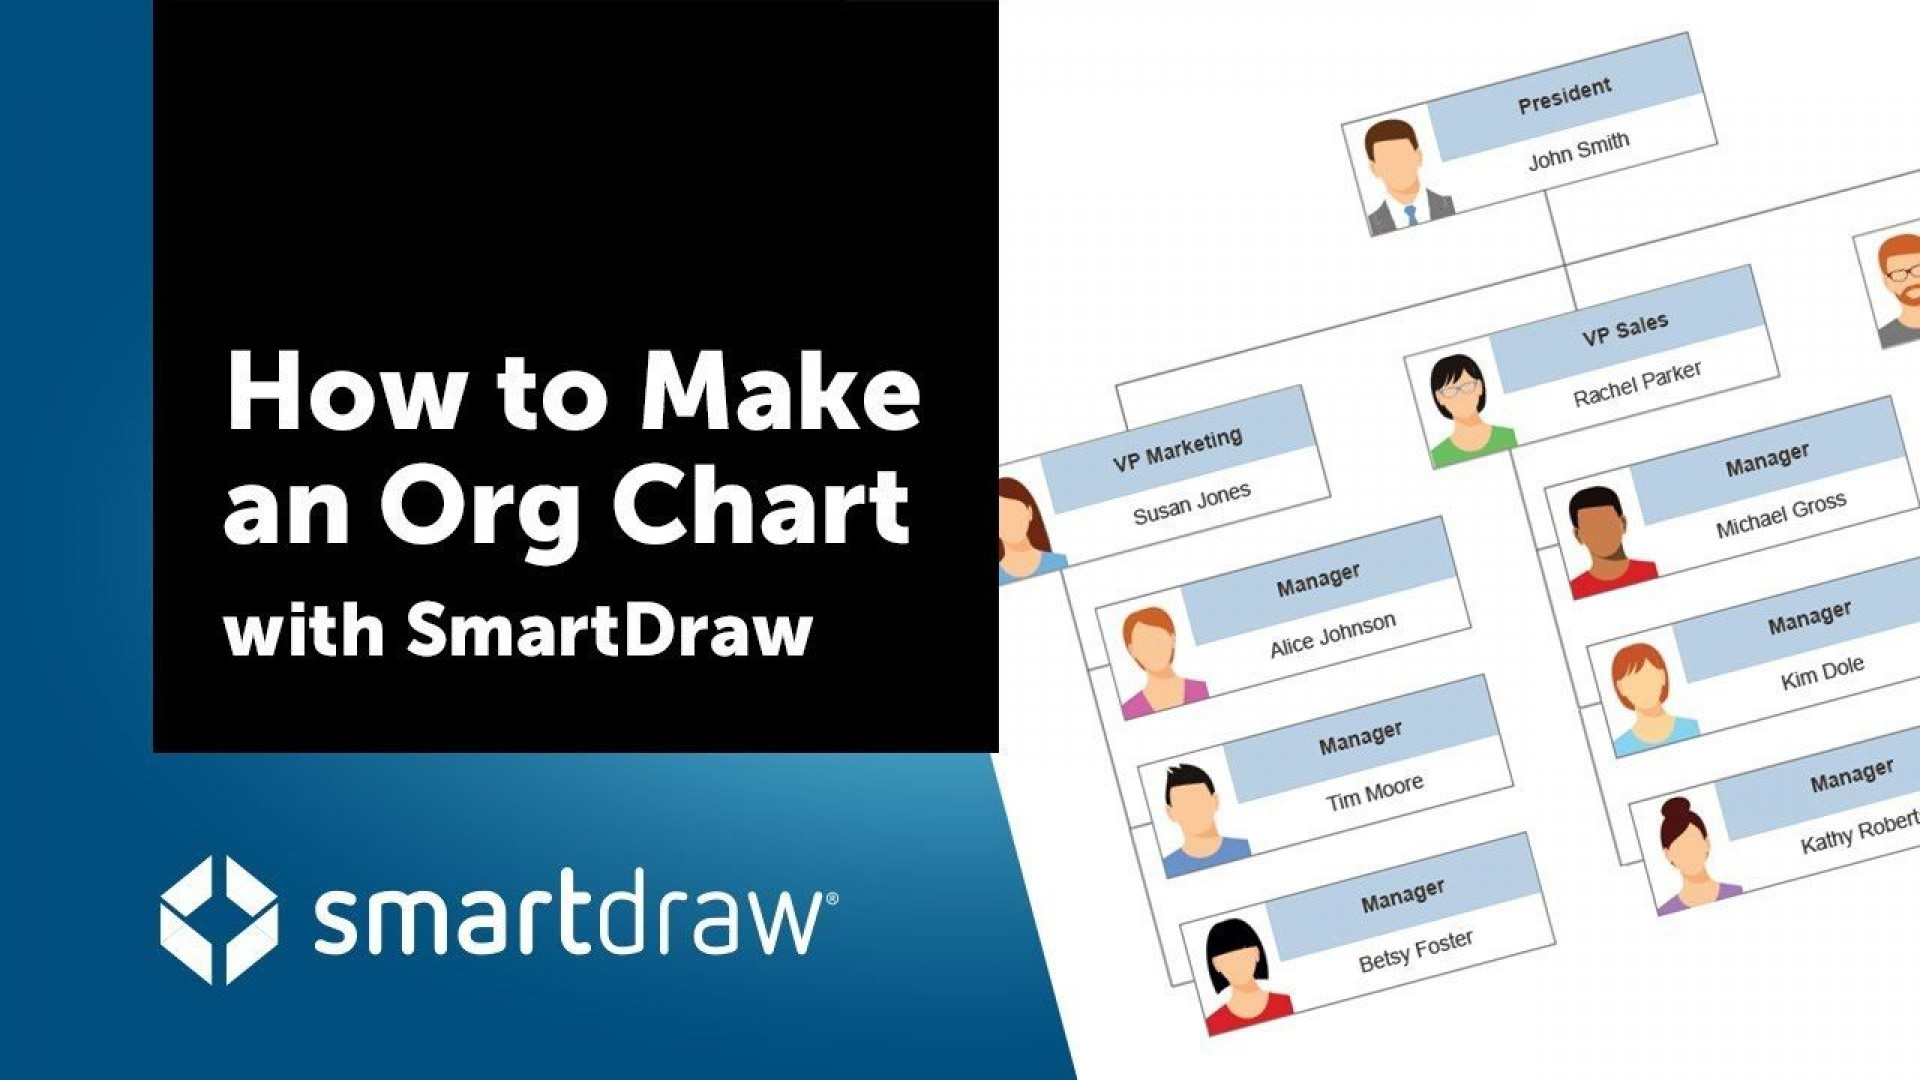 004 Archaicawful Free Organizational Chart Template Excel 2010 Idea 1920